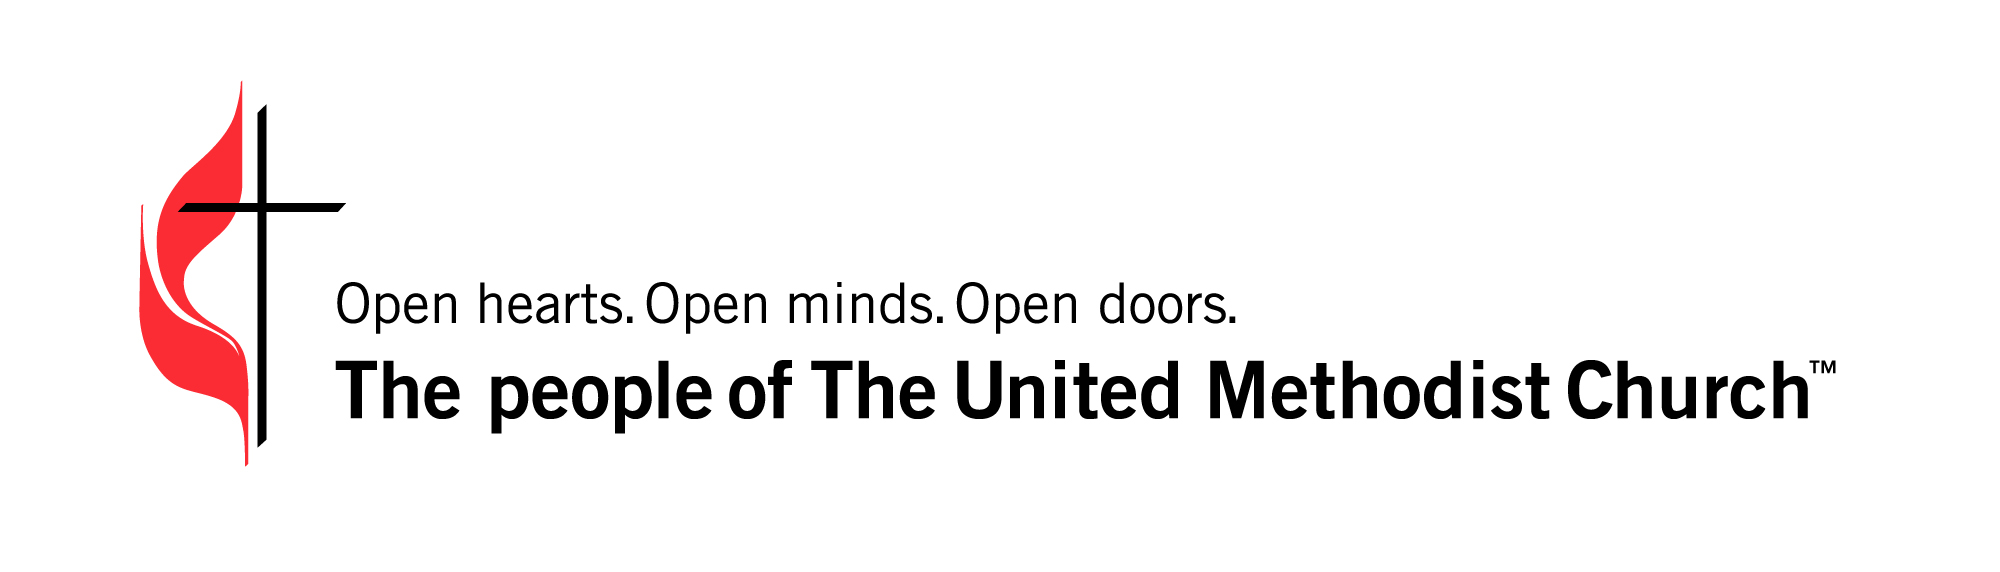 open hearts open minds open doors essay Open hearts, open minds, open doors (sibelius format) open hearts, open minds, open doors (pdf format) barbara campbellmay be reached by e-mail at [email protected].